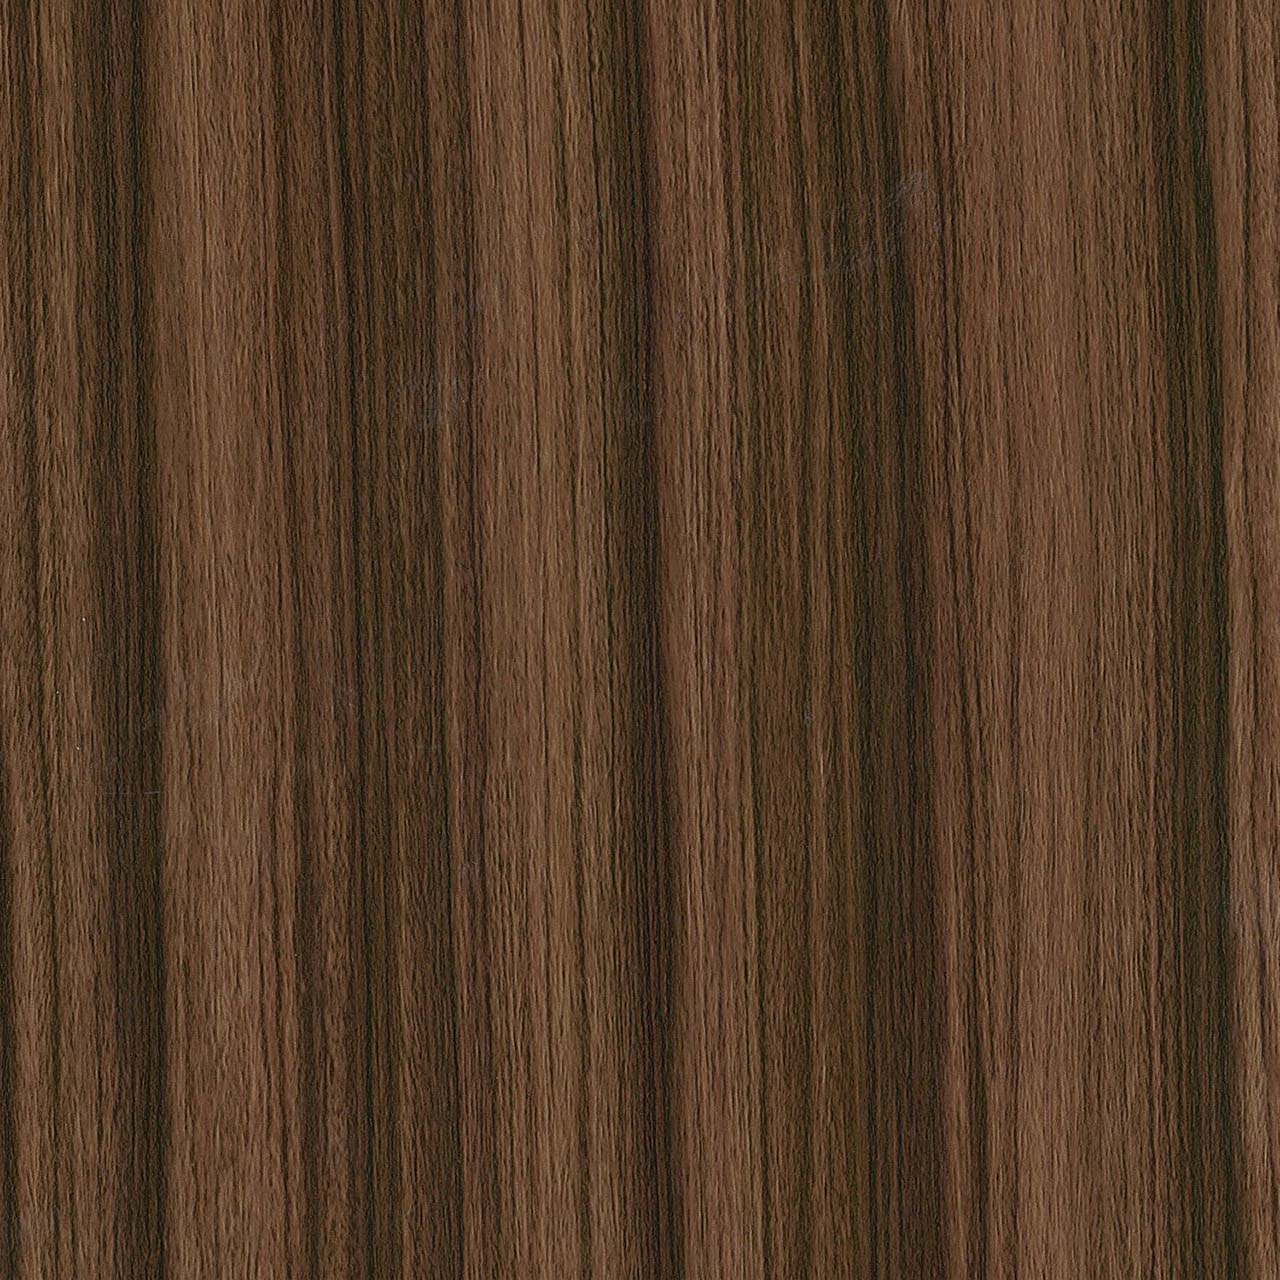 High gloss macassar with lacquered finish, also available in other effects